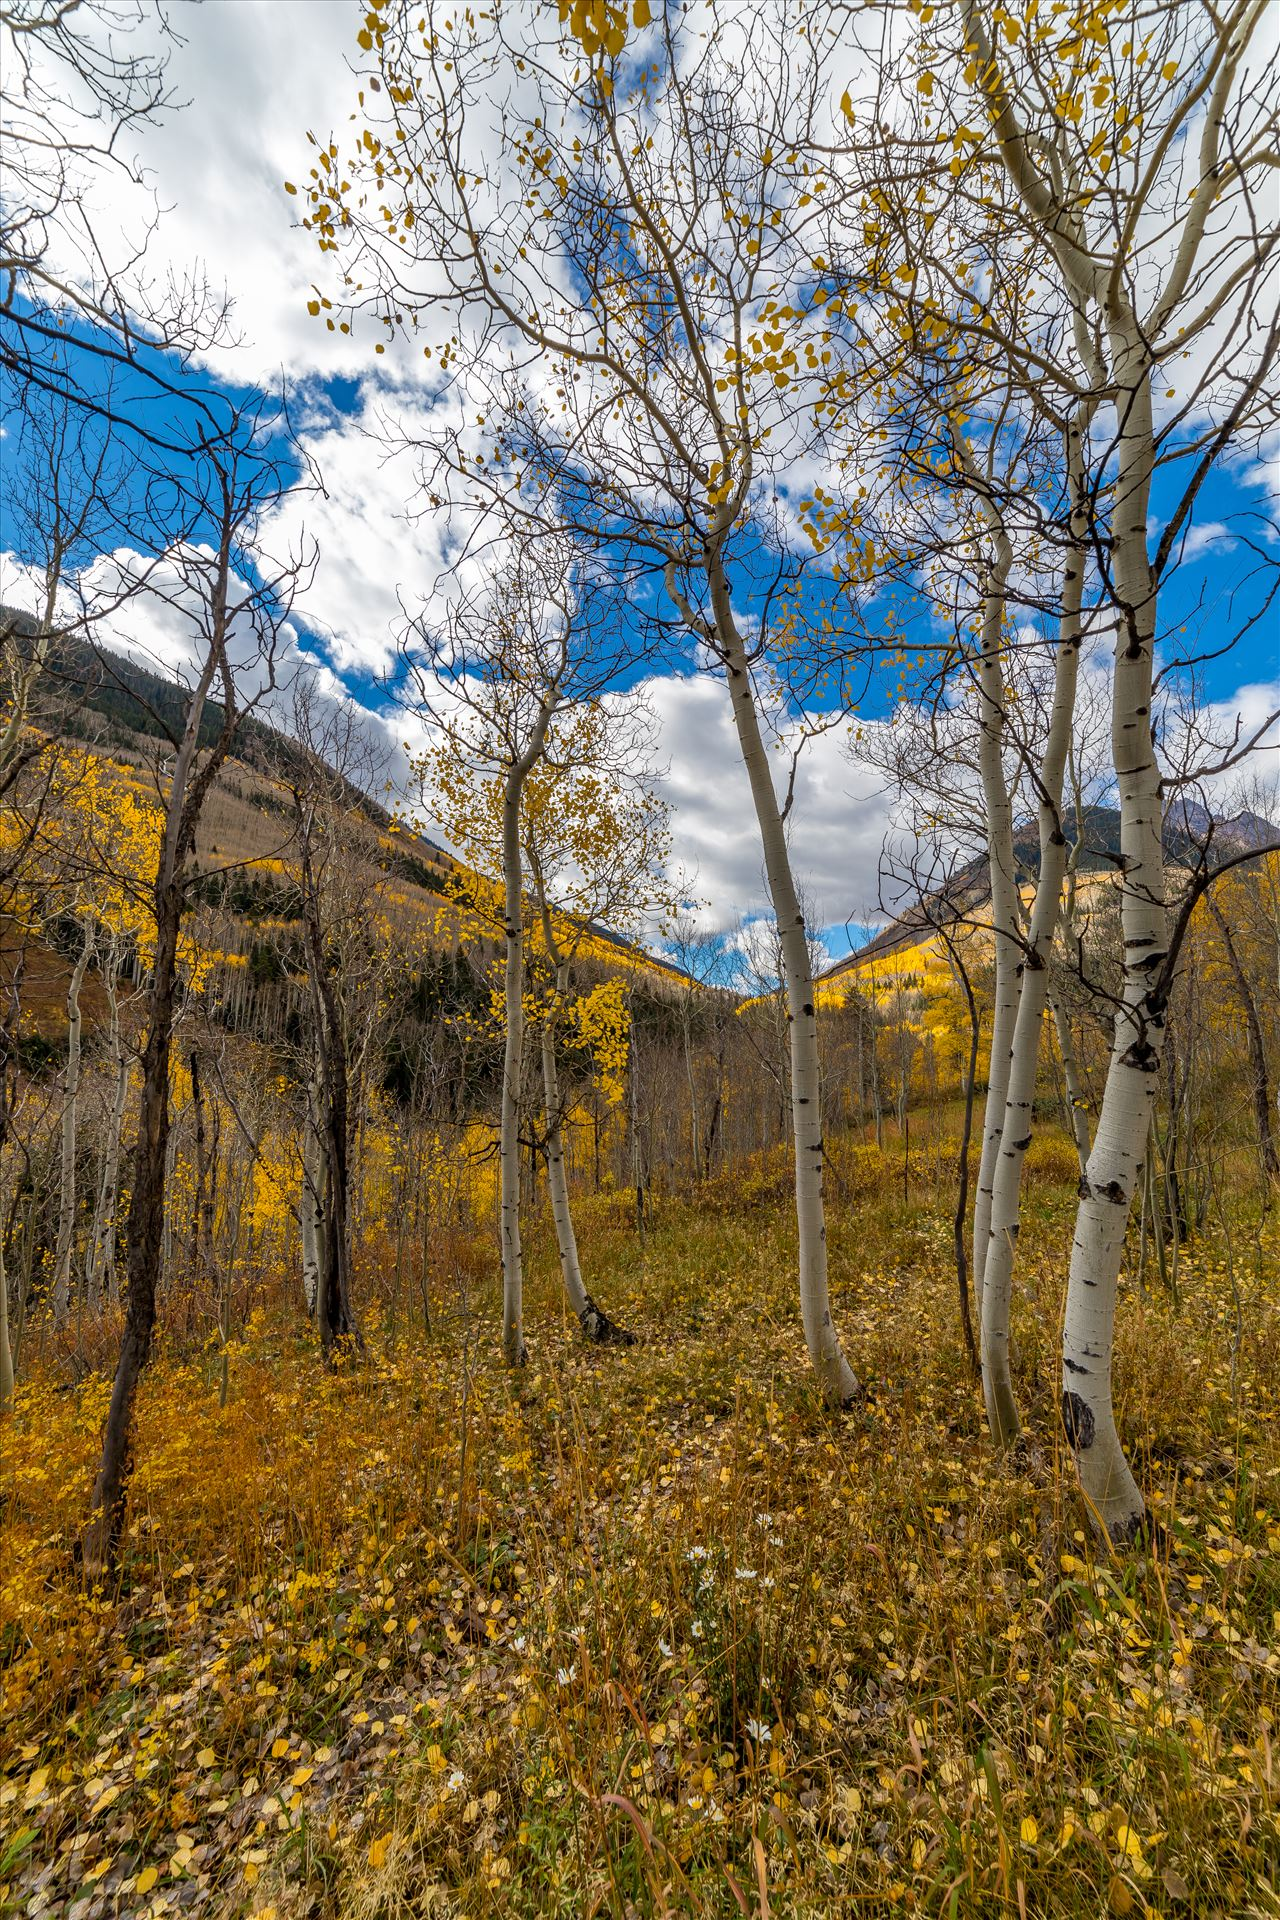 Maroon Creek Aspens - Just off Maroon Creek Drive near Aspen, Colorado by D Scott Smith